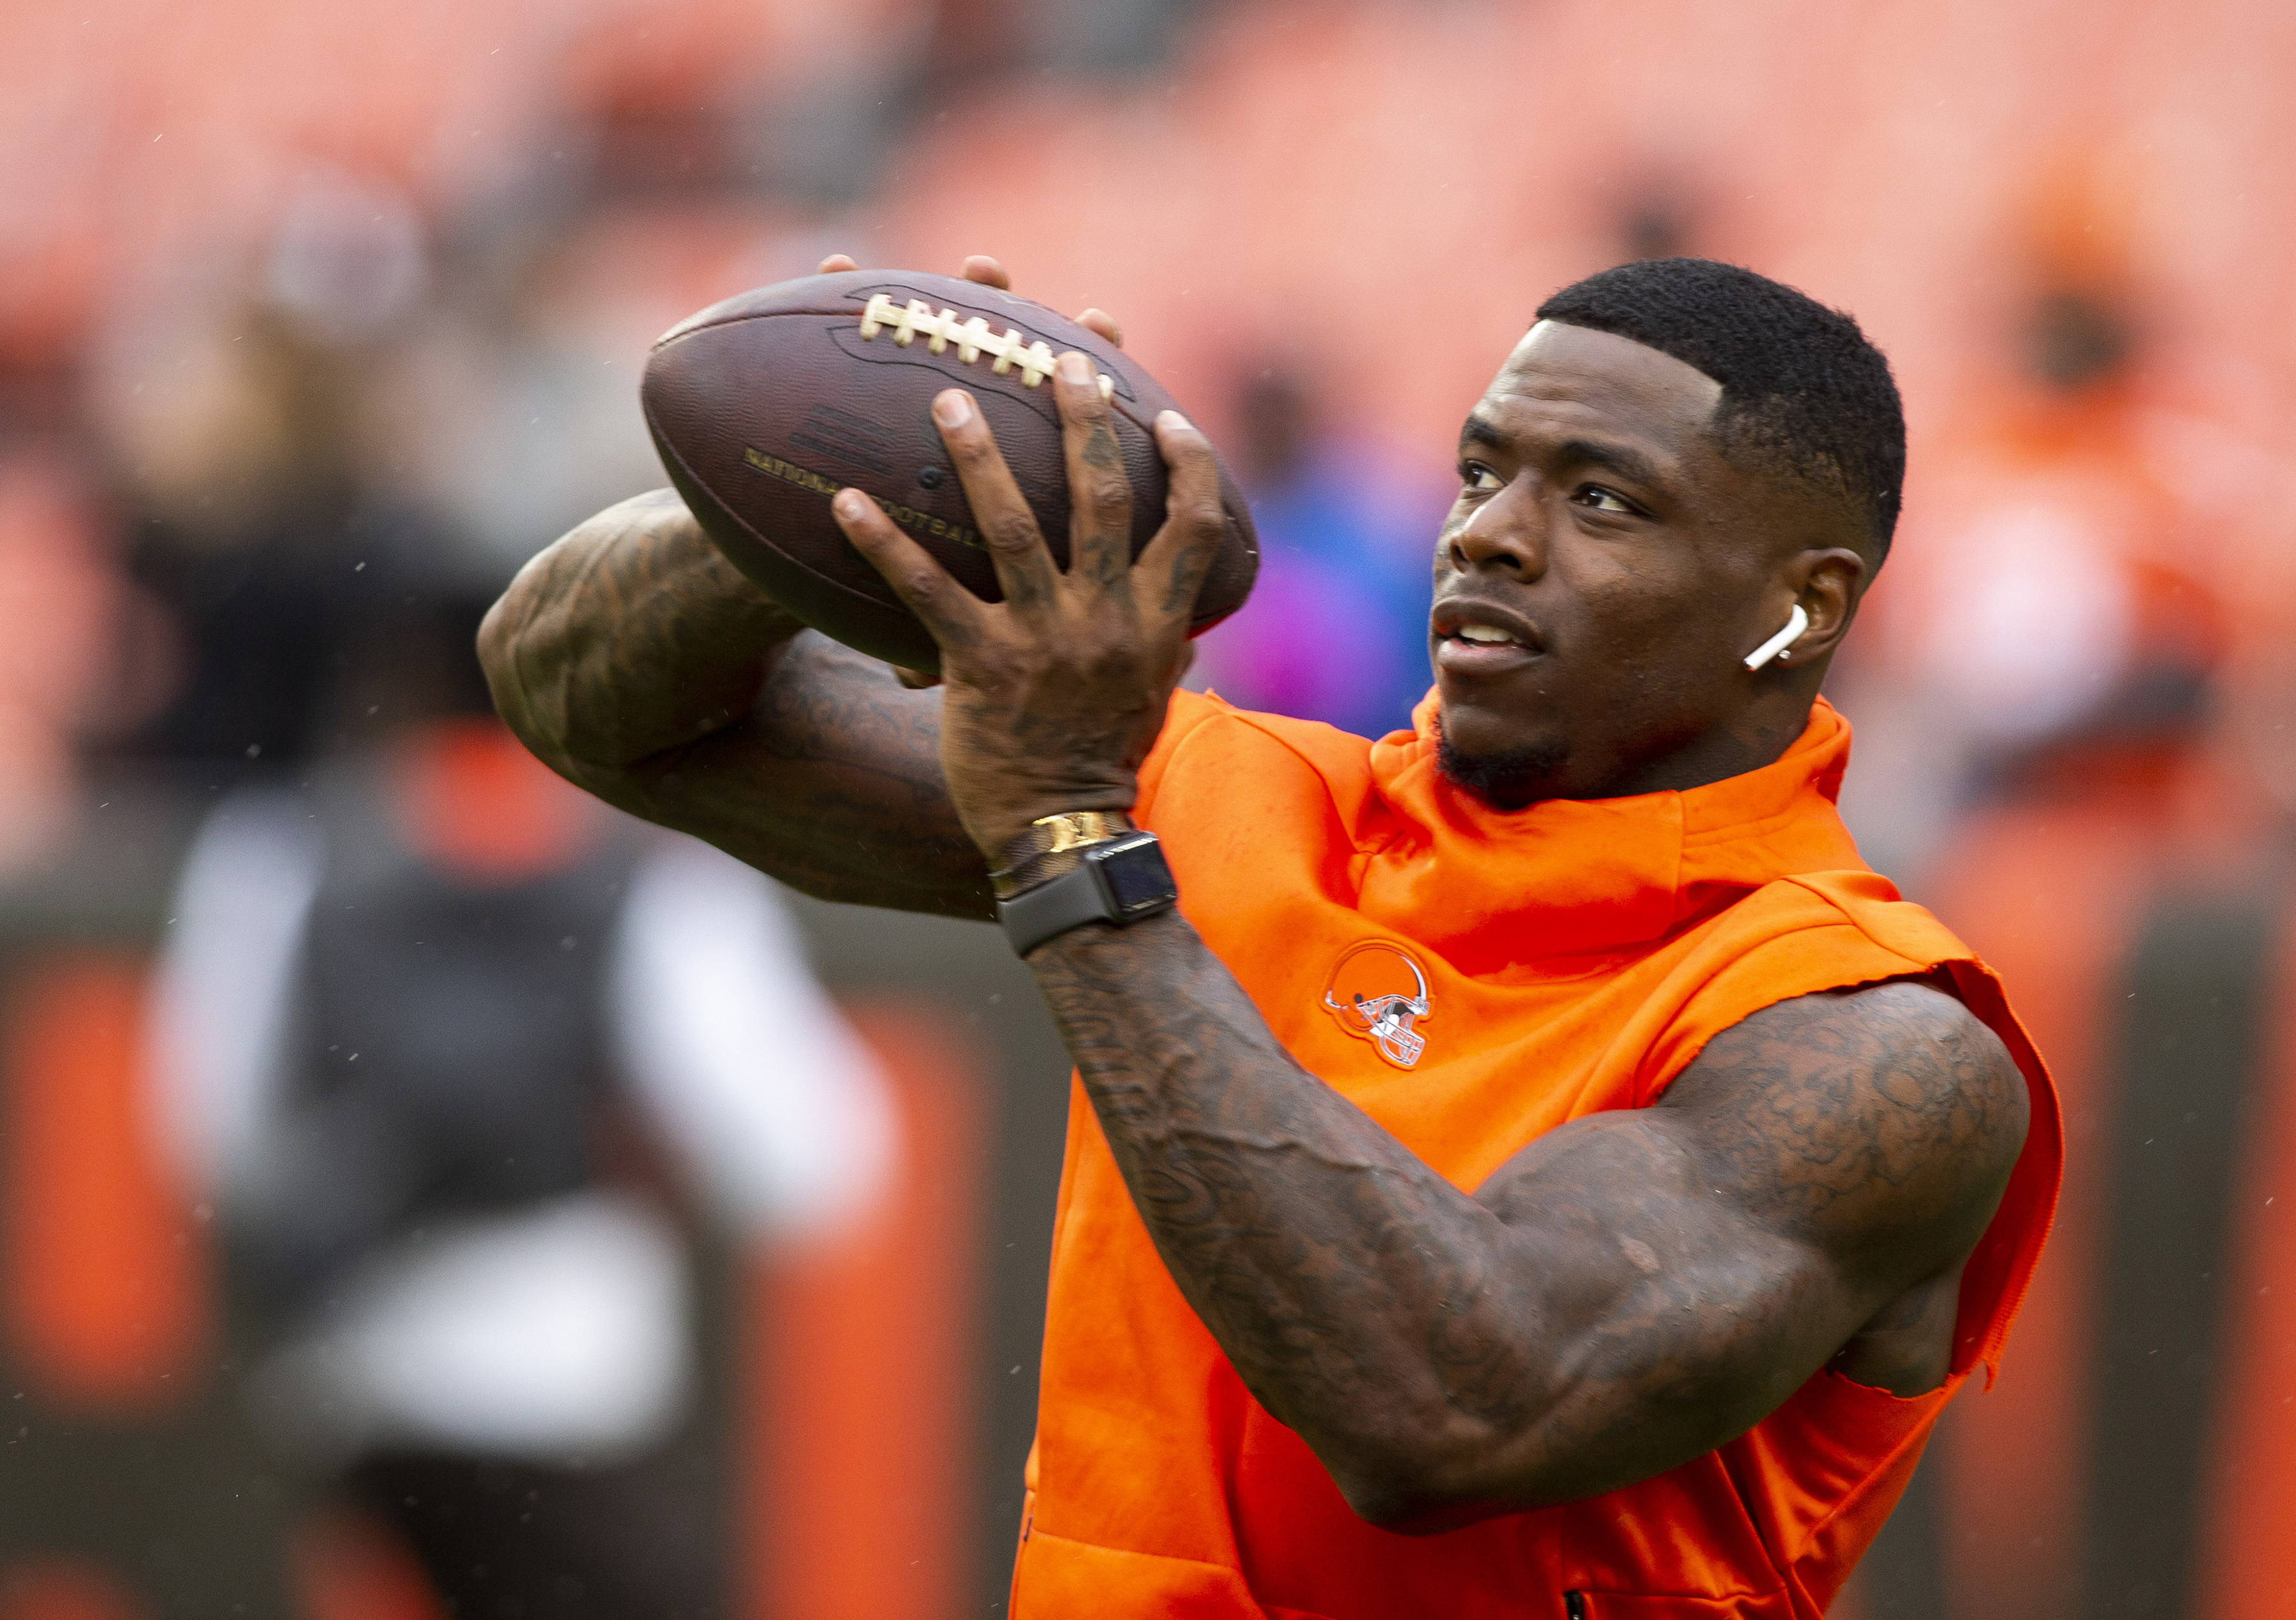 Dallas Cowboys have no intentions of acquiring Josh Gordon